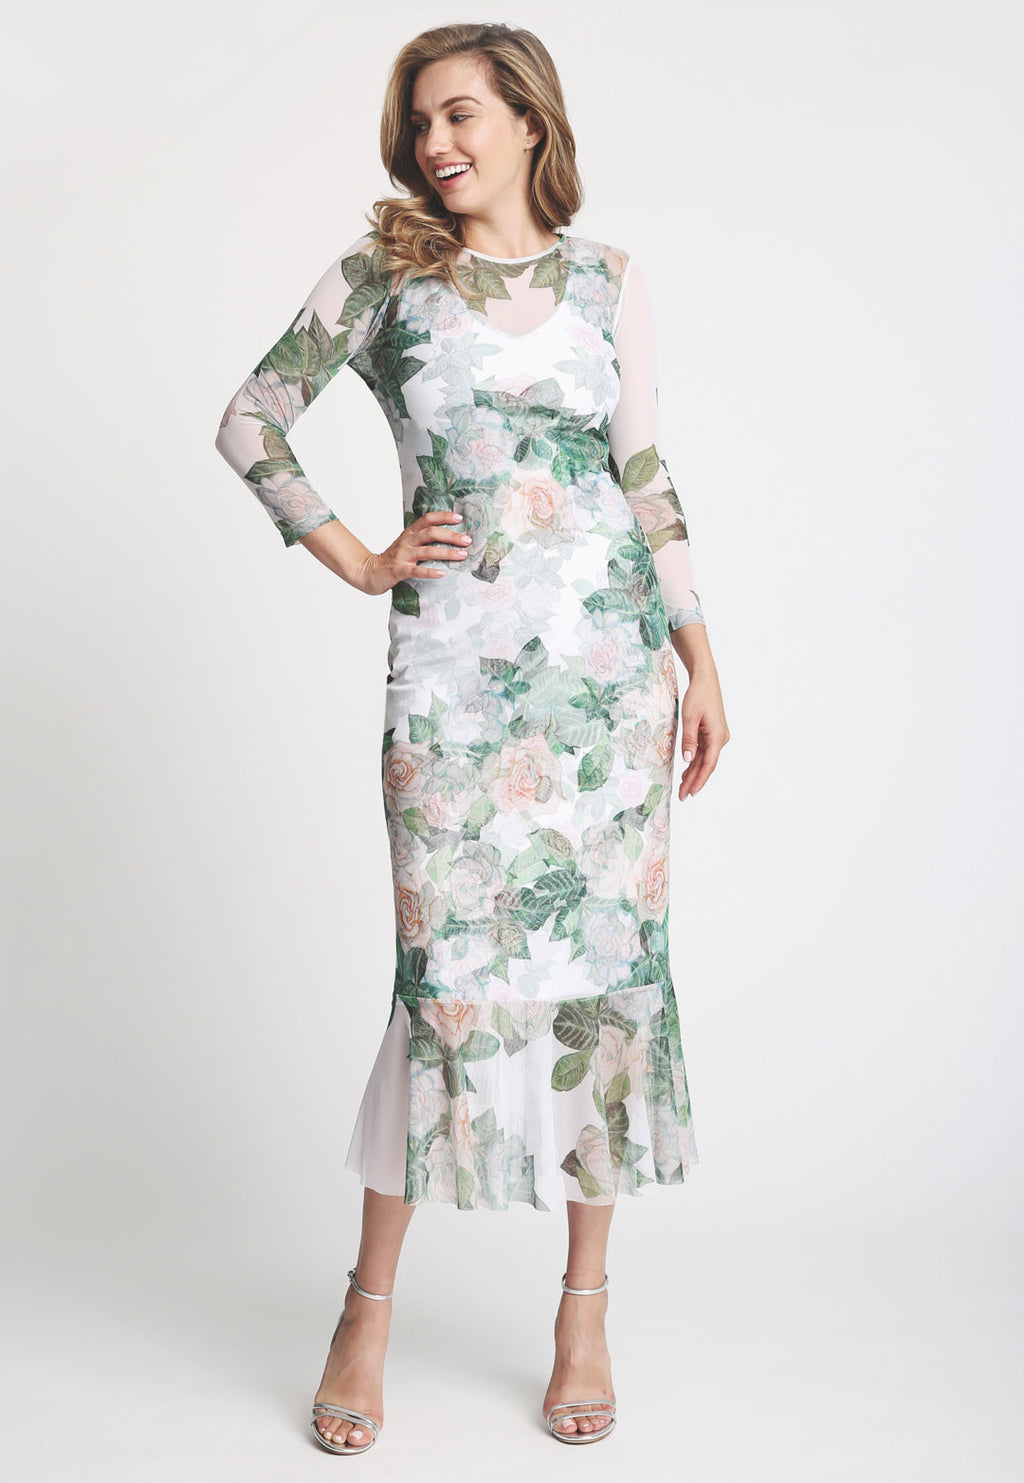 Sophie Dress in Gardenia front view